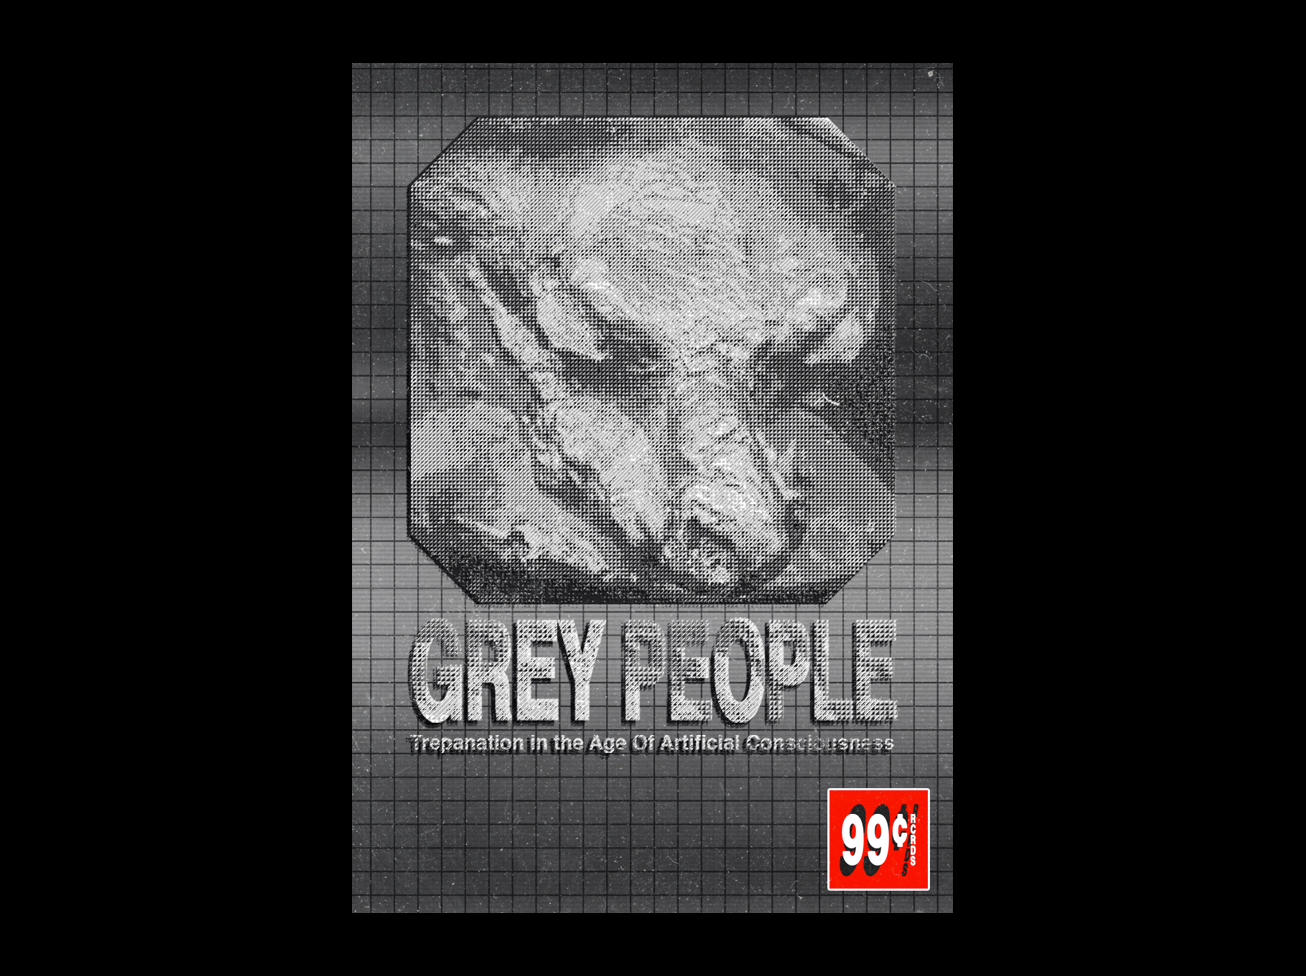 clvstr-99cts-grey-people-artwork.jpg